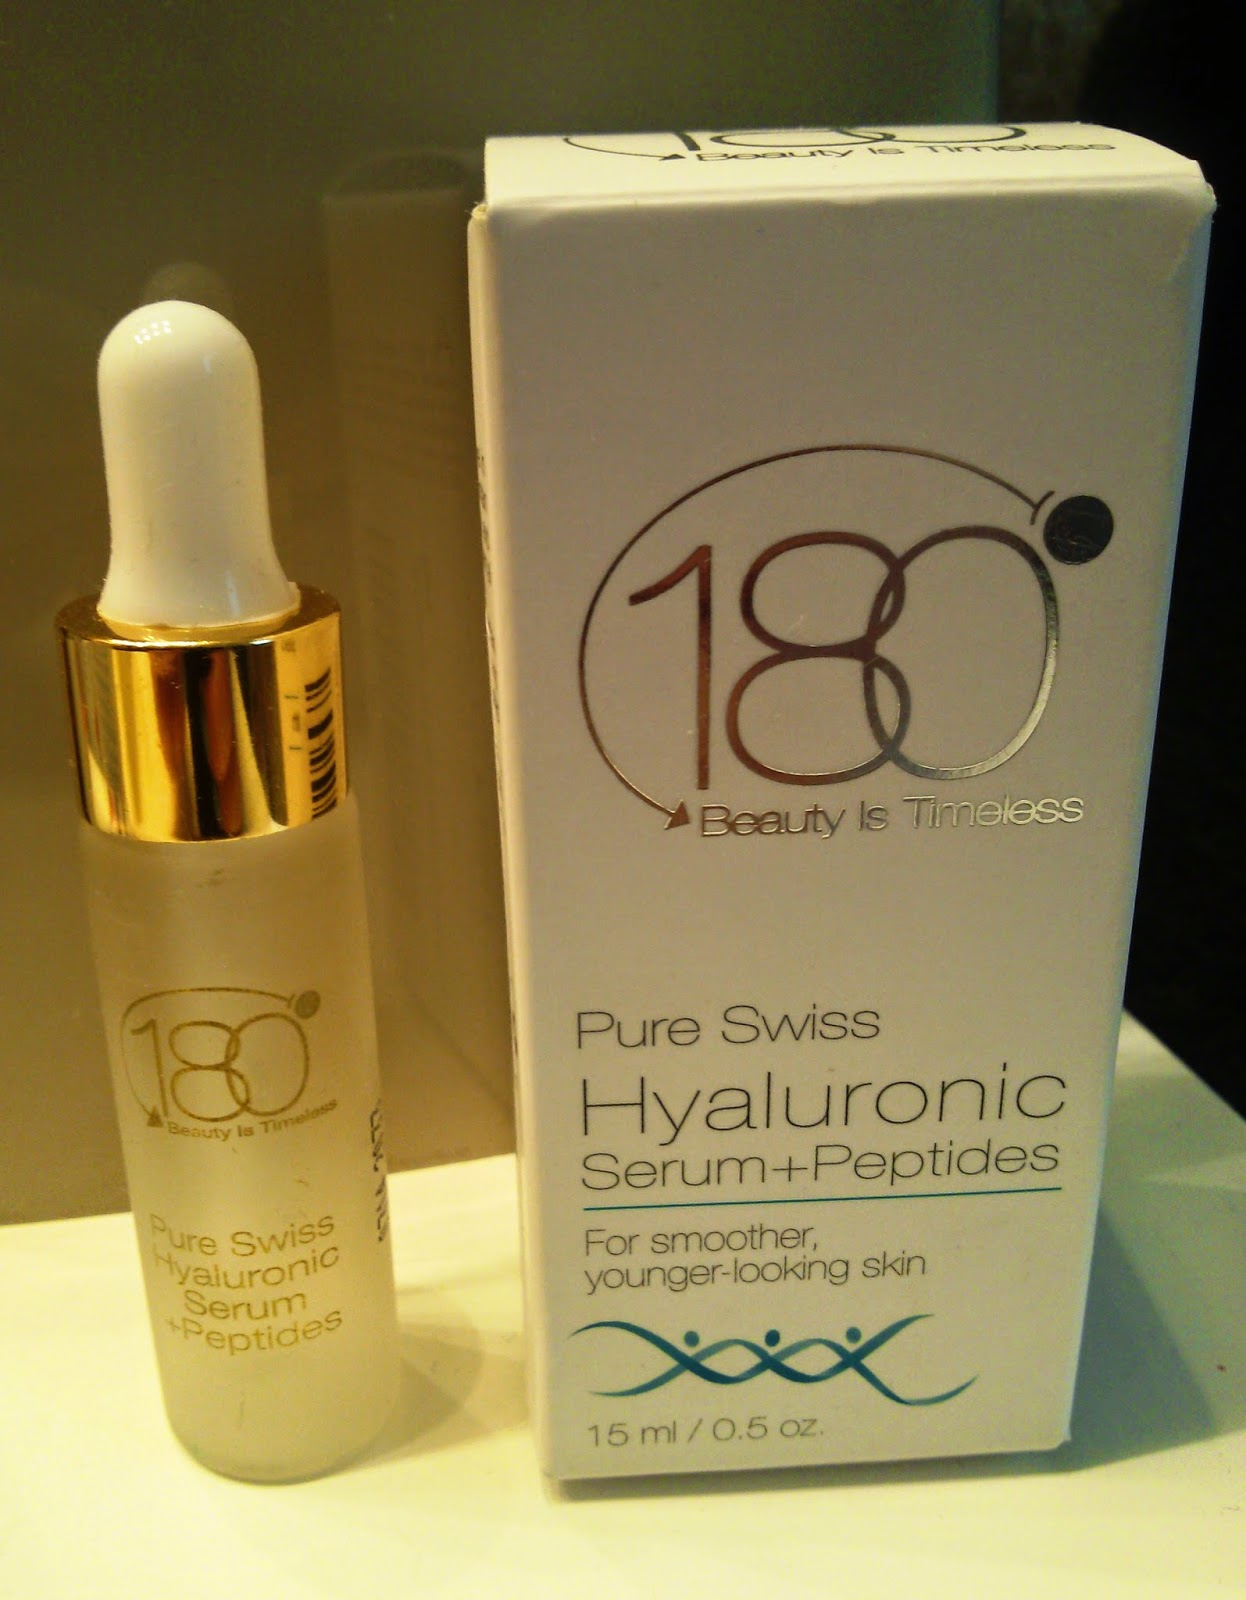 180 Cosmetics Pure Swiss Hyaluronic Serum + Peptides Review